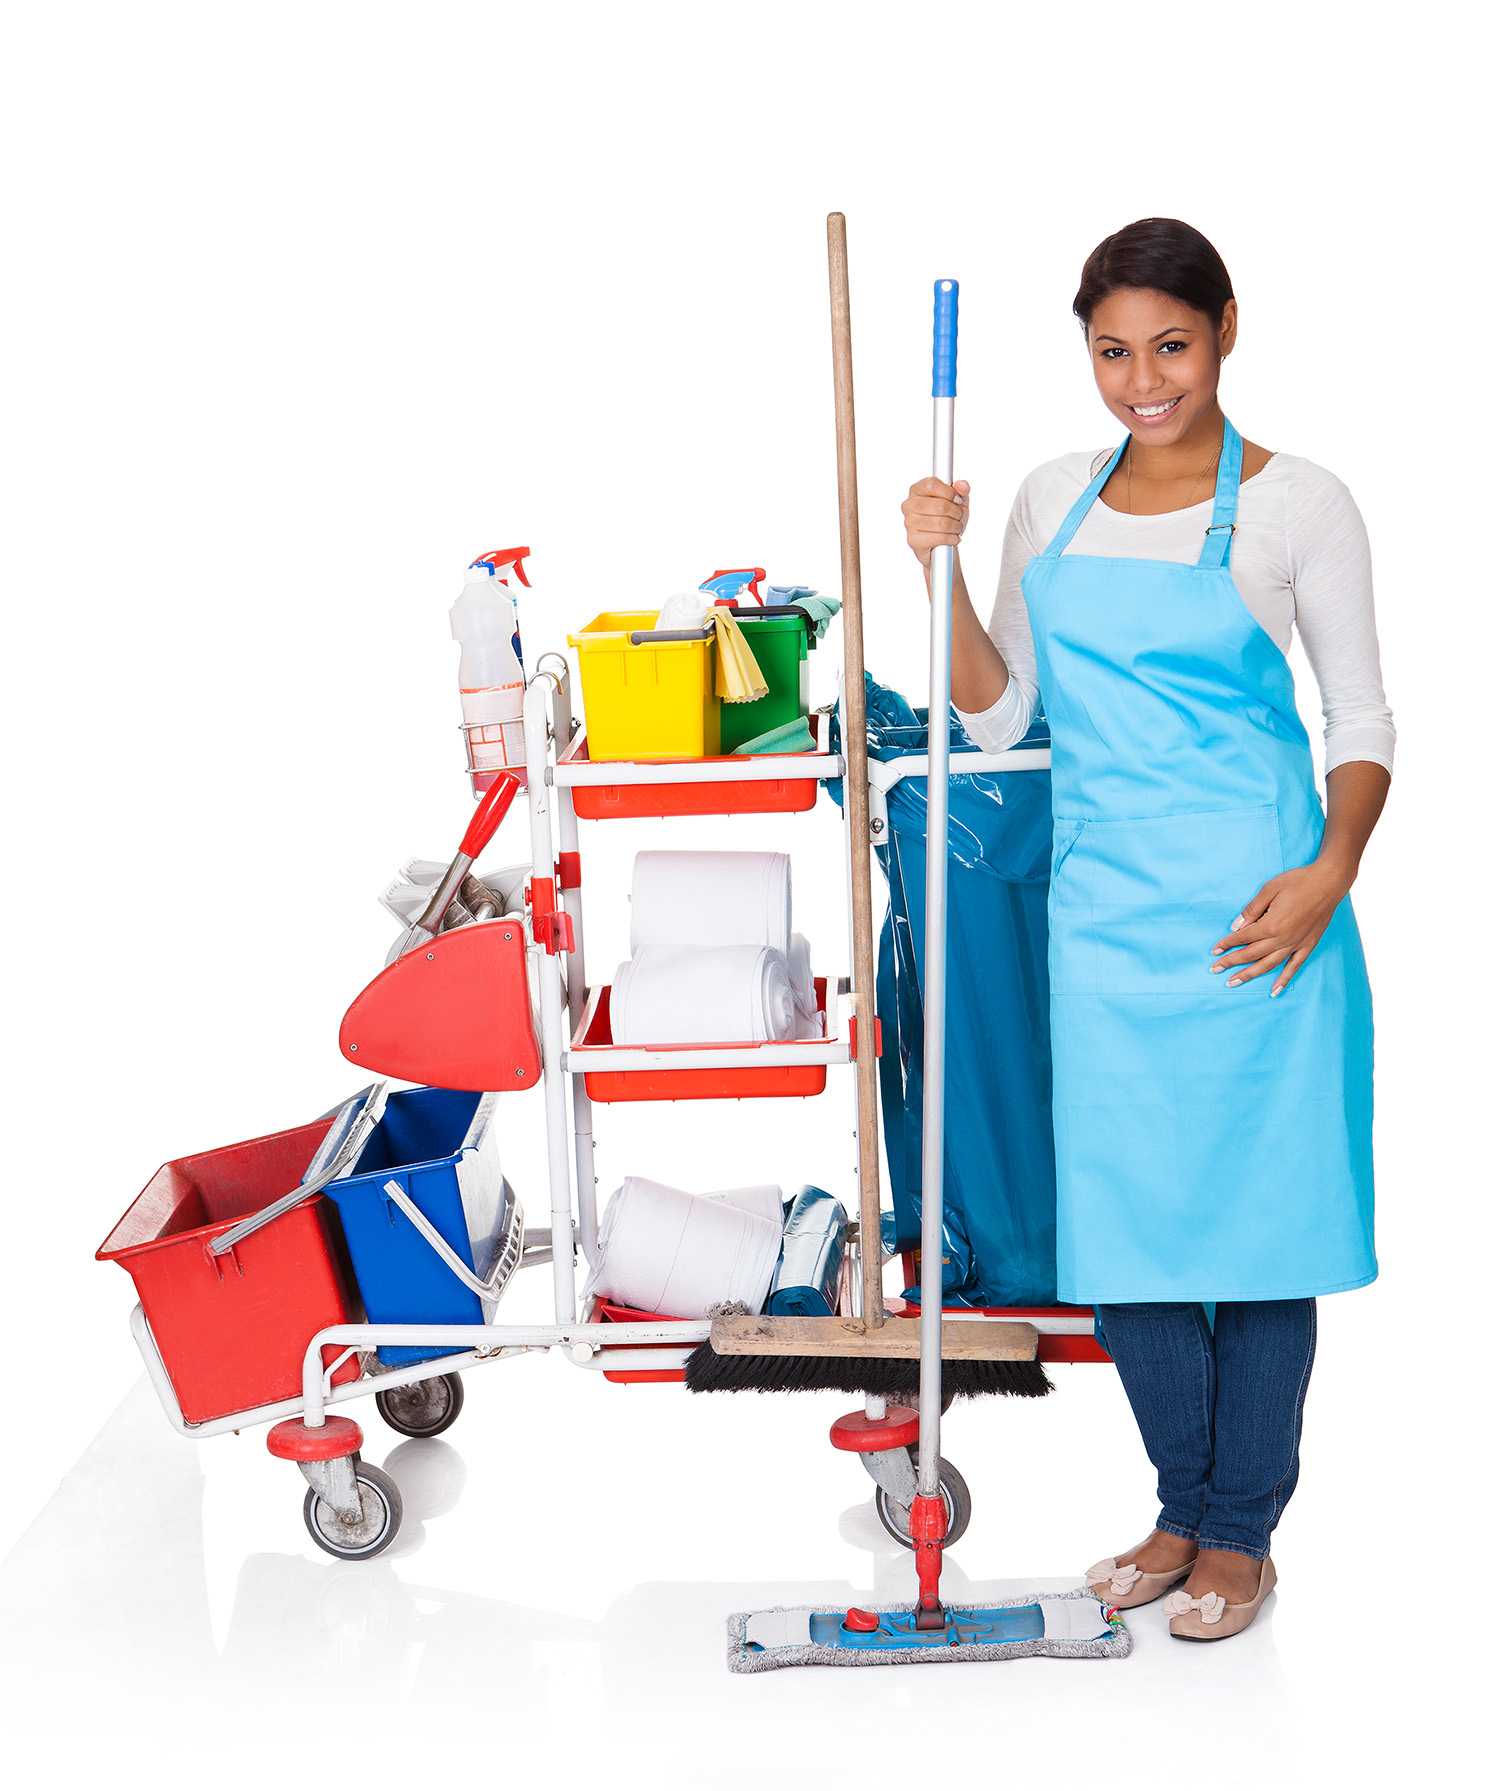 Female Cleaner With Cleaning Equipment. Isolated On White